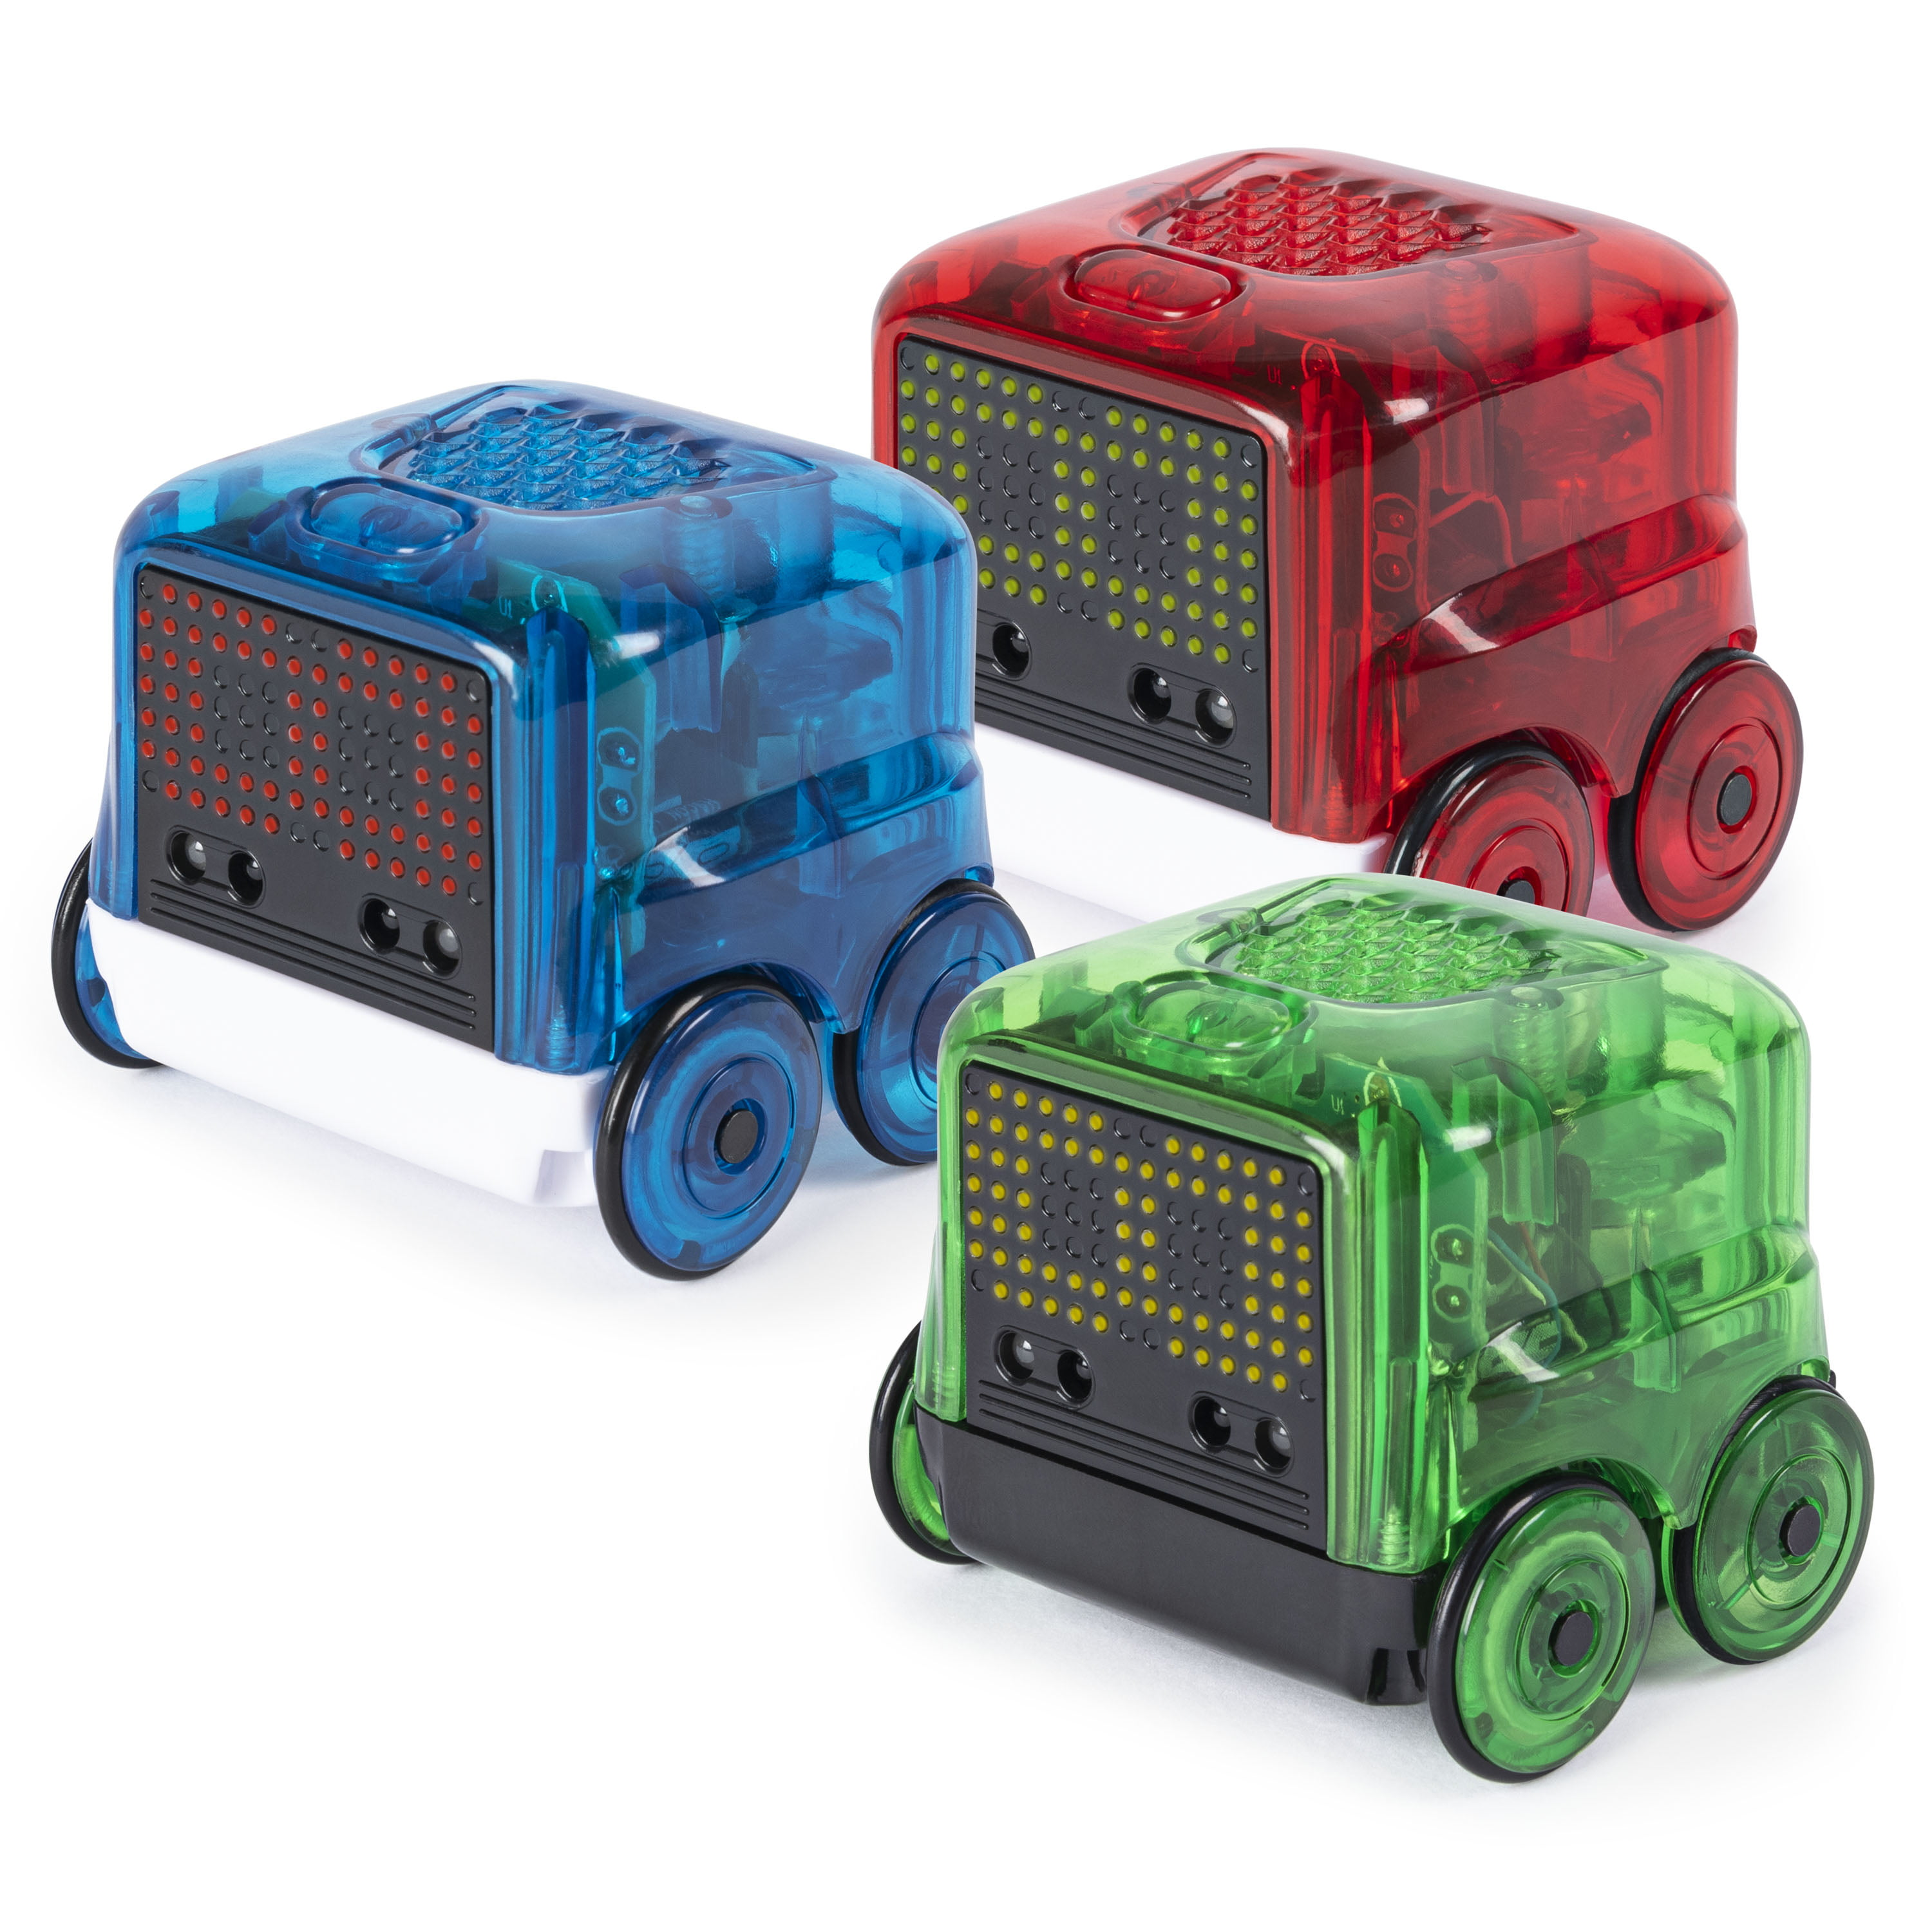 Novie, Interactive Smart Robot with Over 75 Actions and Learns 12 Tricks for Kids Aged 4 and Up - Pickup Today! Colors may vary, 1 item